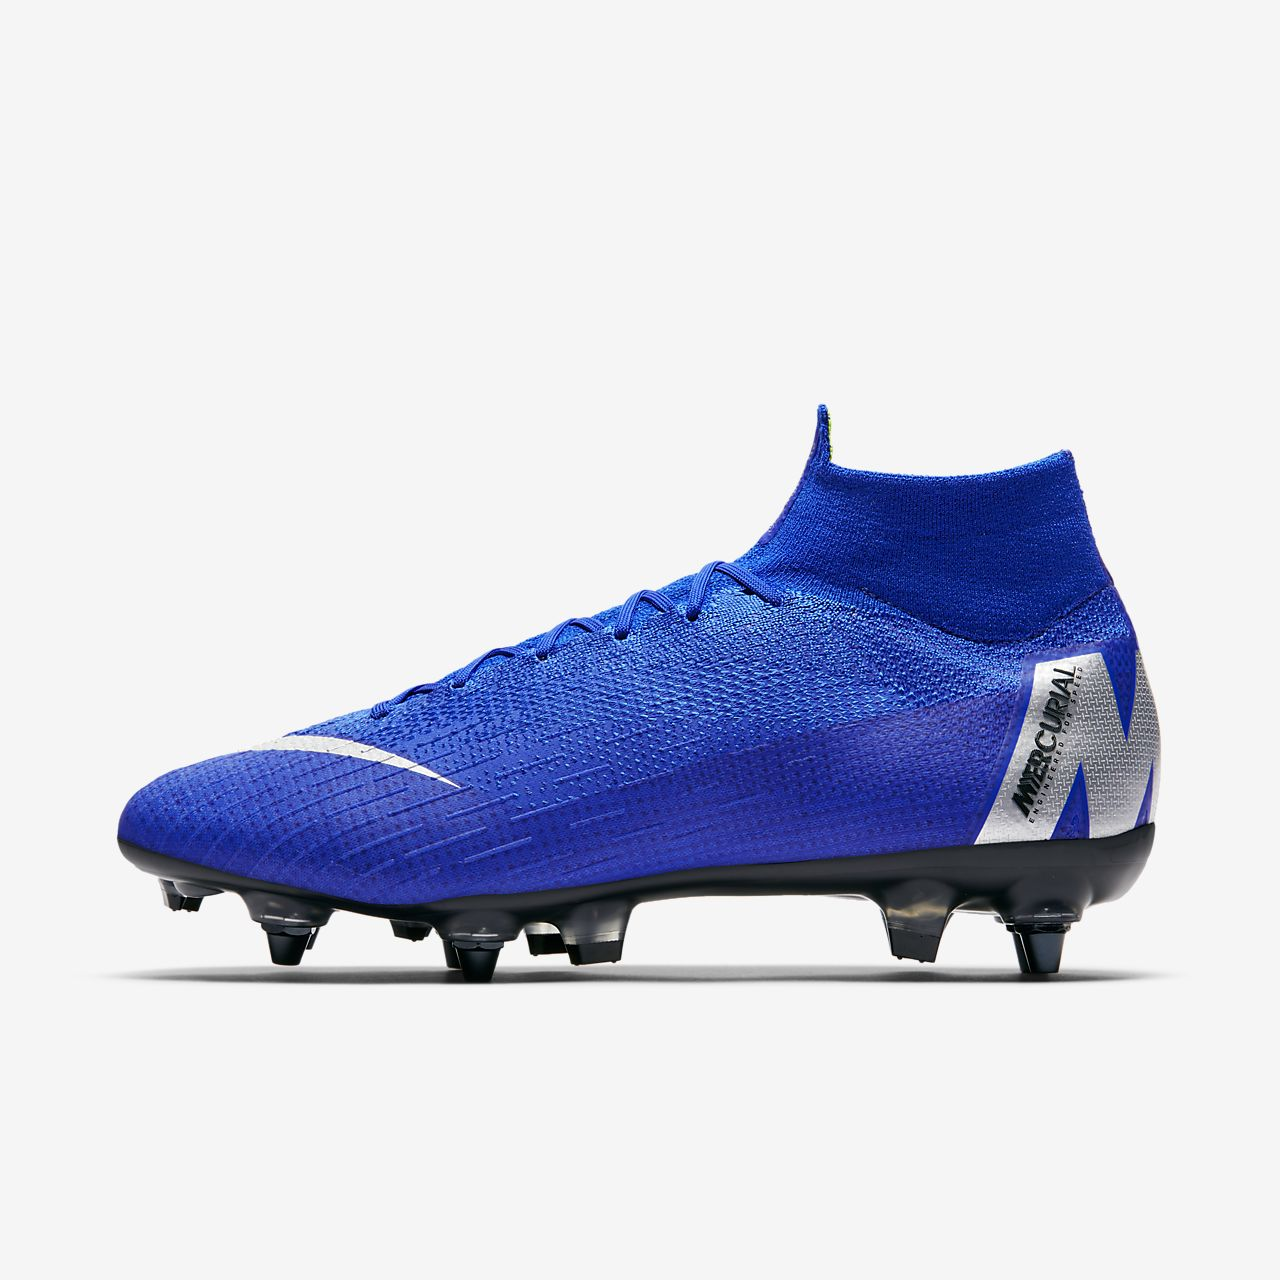 Chaussure de football à crampons pour terrain gras Nike Mercurial Superfly 360 Elite SG-PRO Anti-Clog